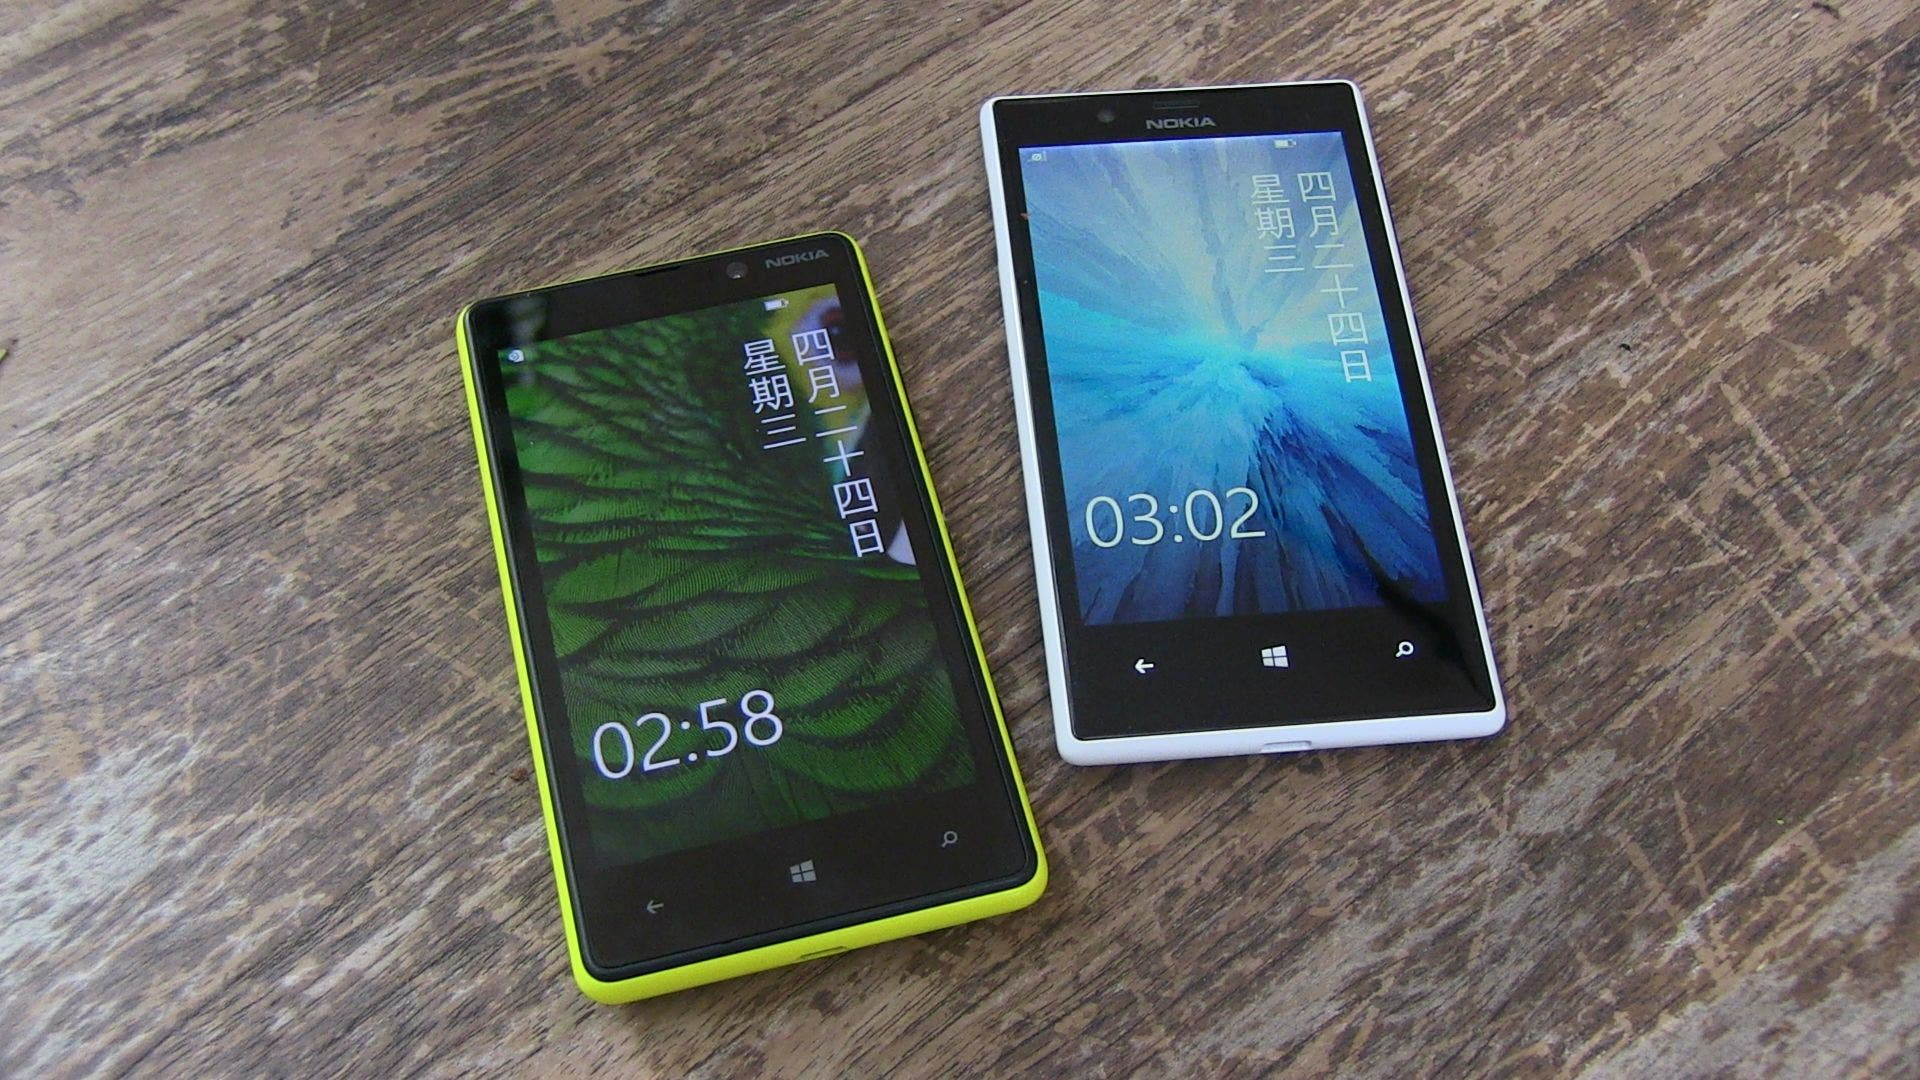 Nokia Lumia 720 vs 820 05